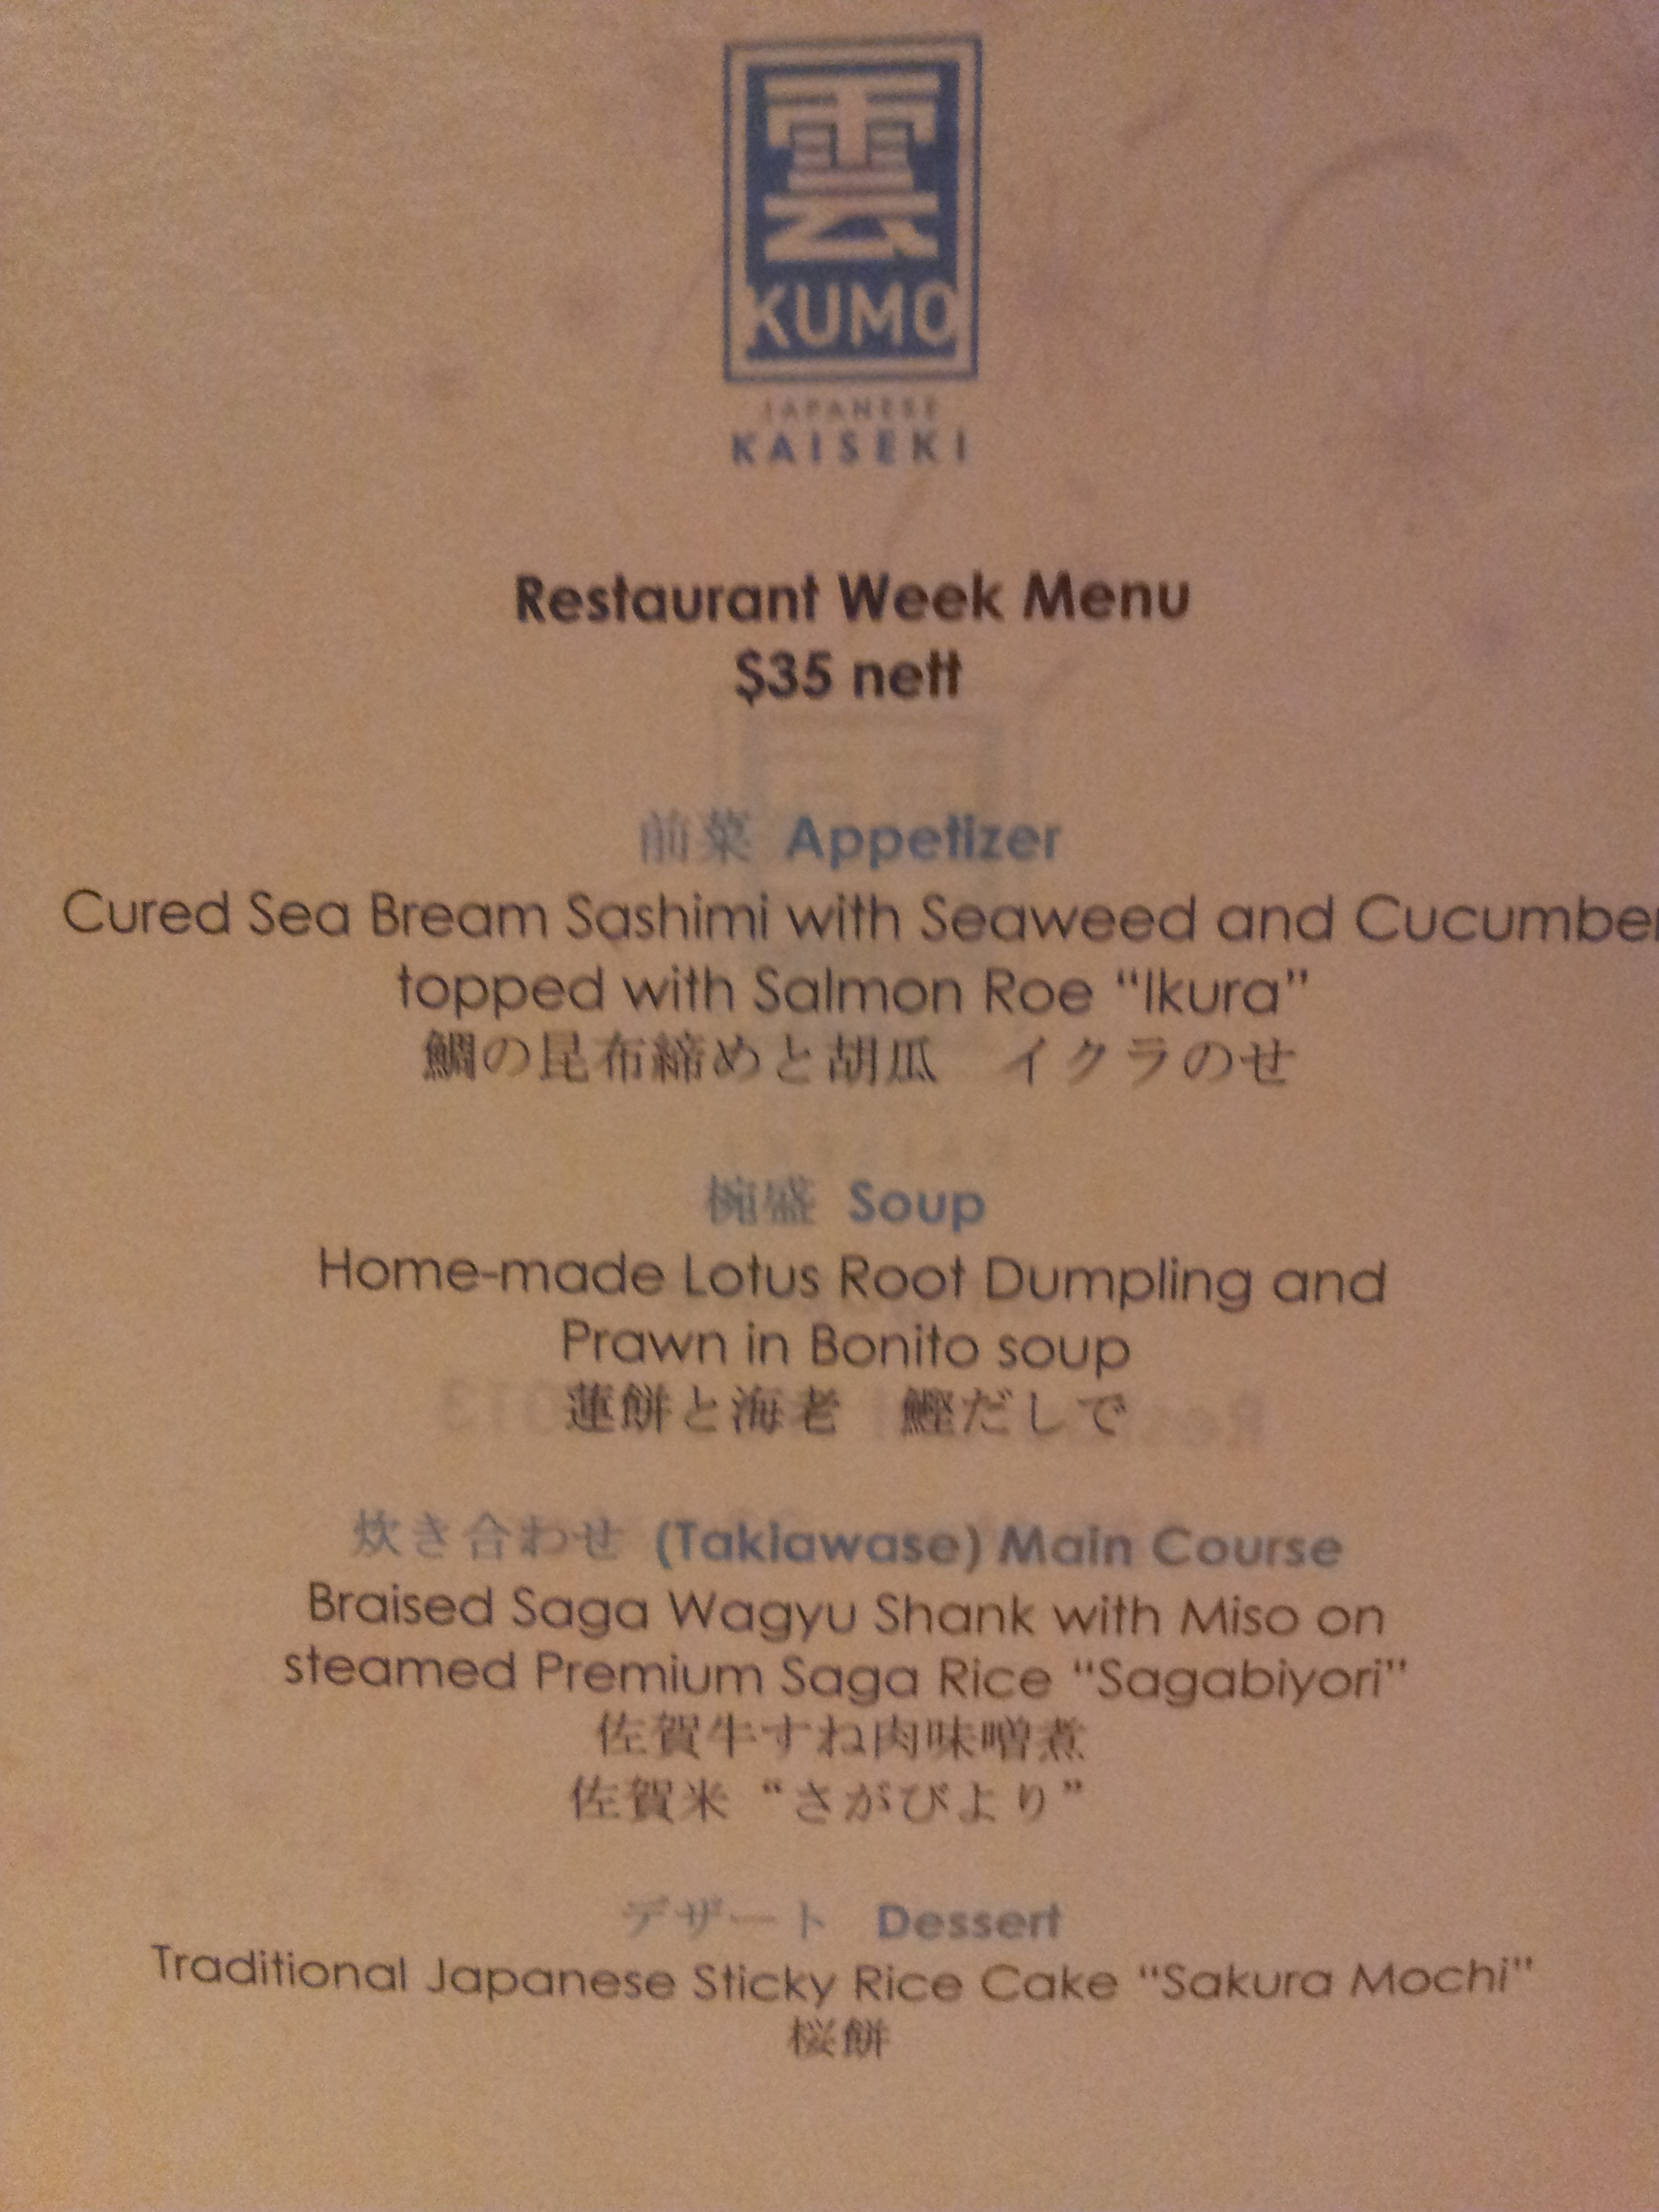 Restaurant Week $35nett Lunch @ Kumo Kaiseki Restaurant on 19Mar2013 ...